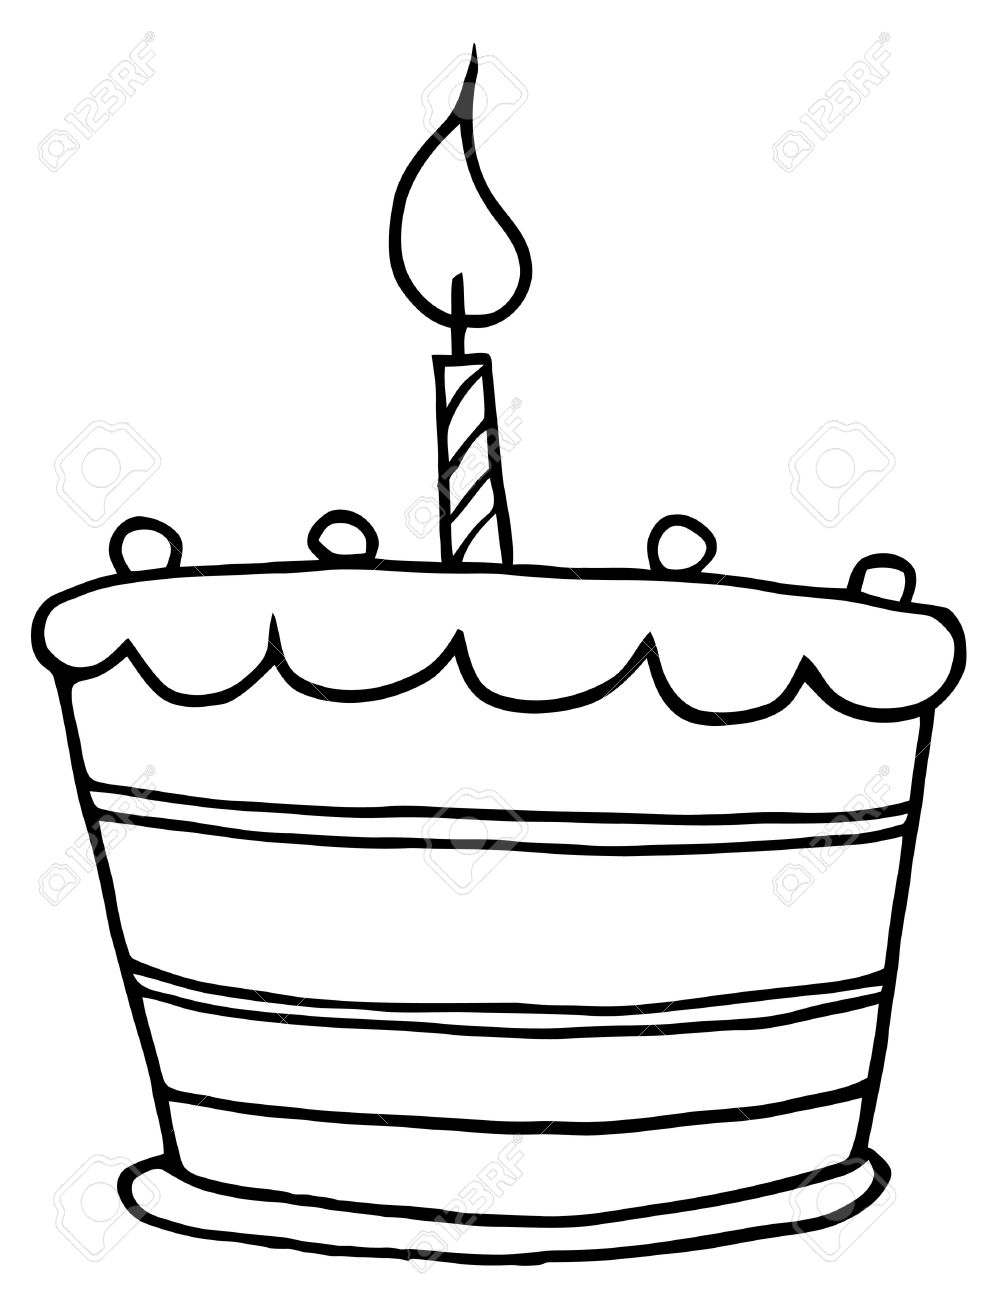 Birthday cake with one candle clipart image freeuse stock Outlined Tiered Birthday Cake With One Candle On Top Royalty Free ... image freeuse stock